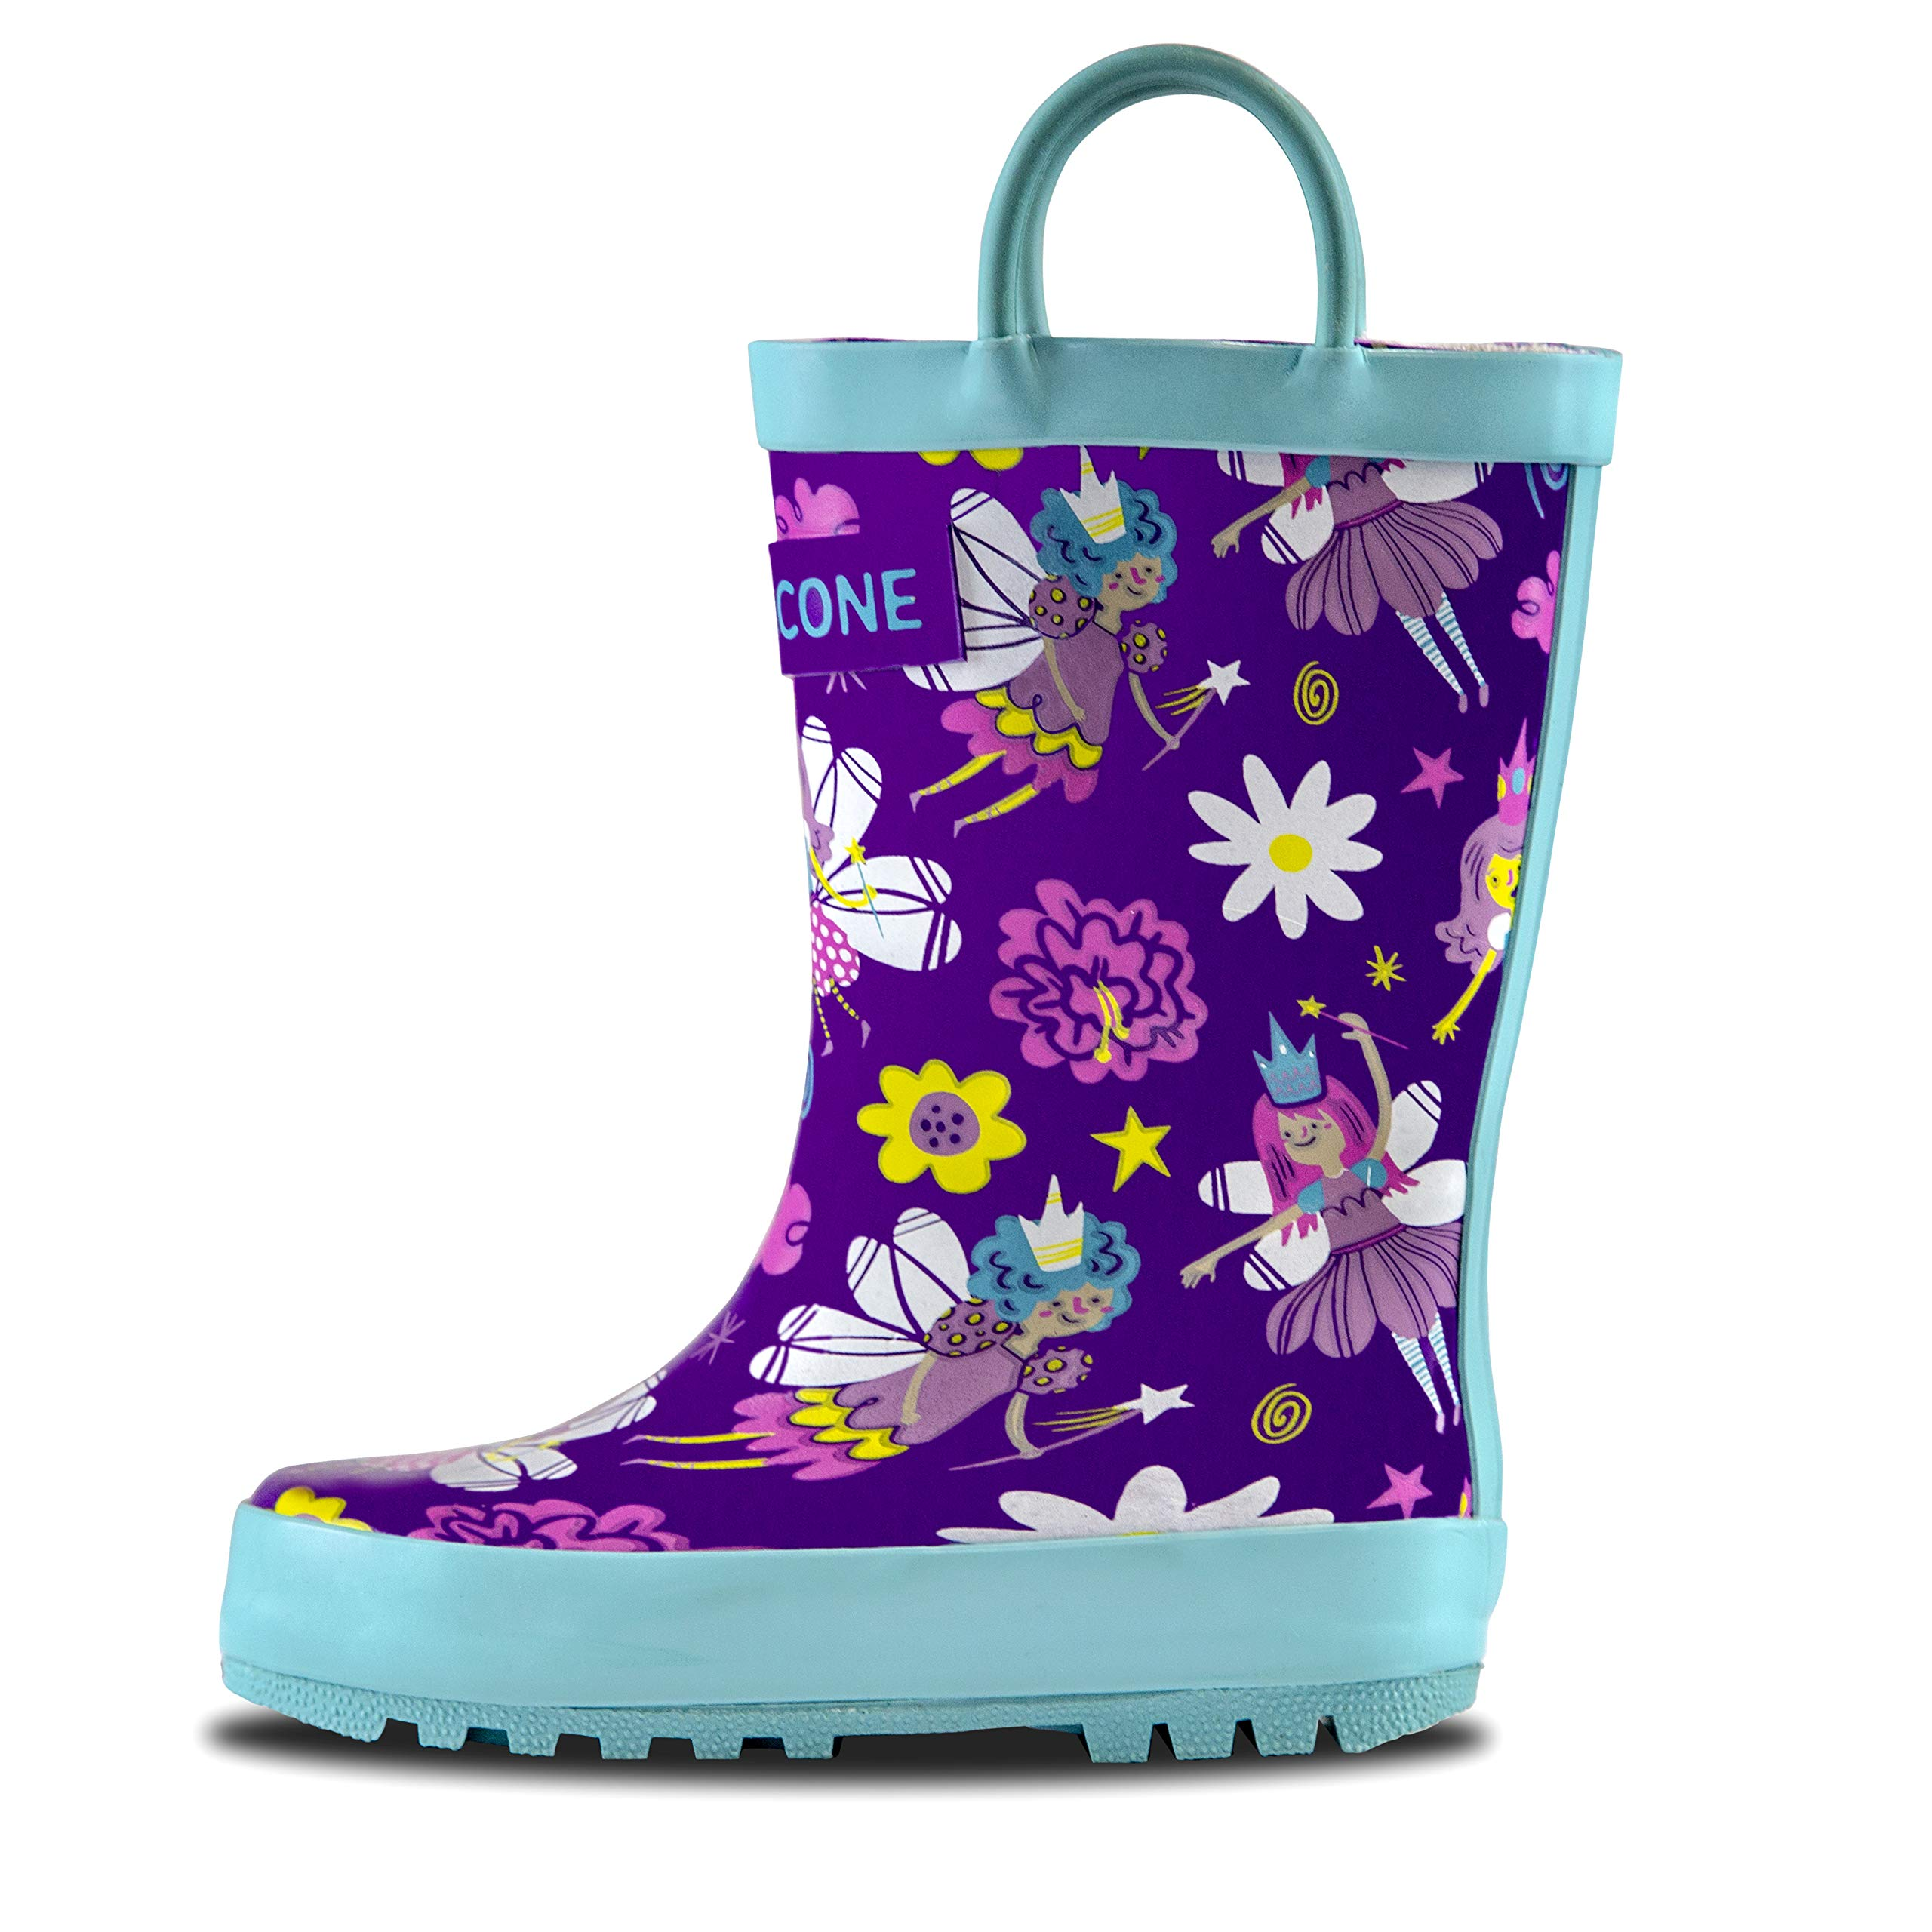 81357304fb7d LONECONE Rain Boots with Easy-On Handles in Fun Patterns for Toddlers and  Kids